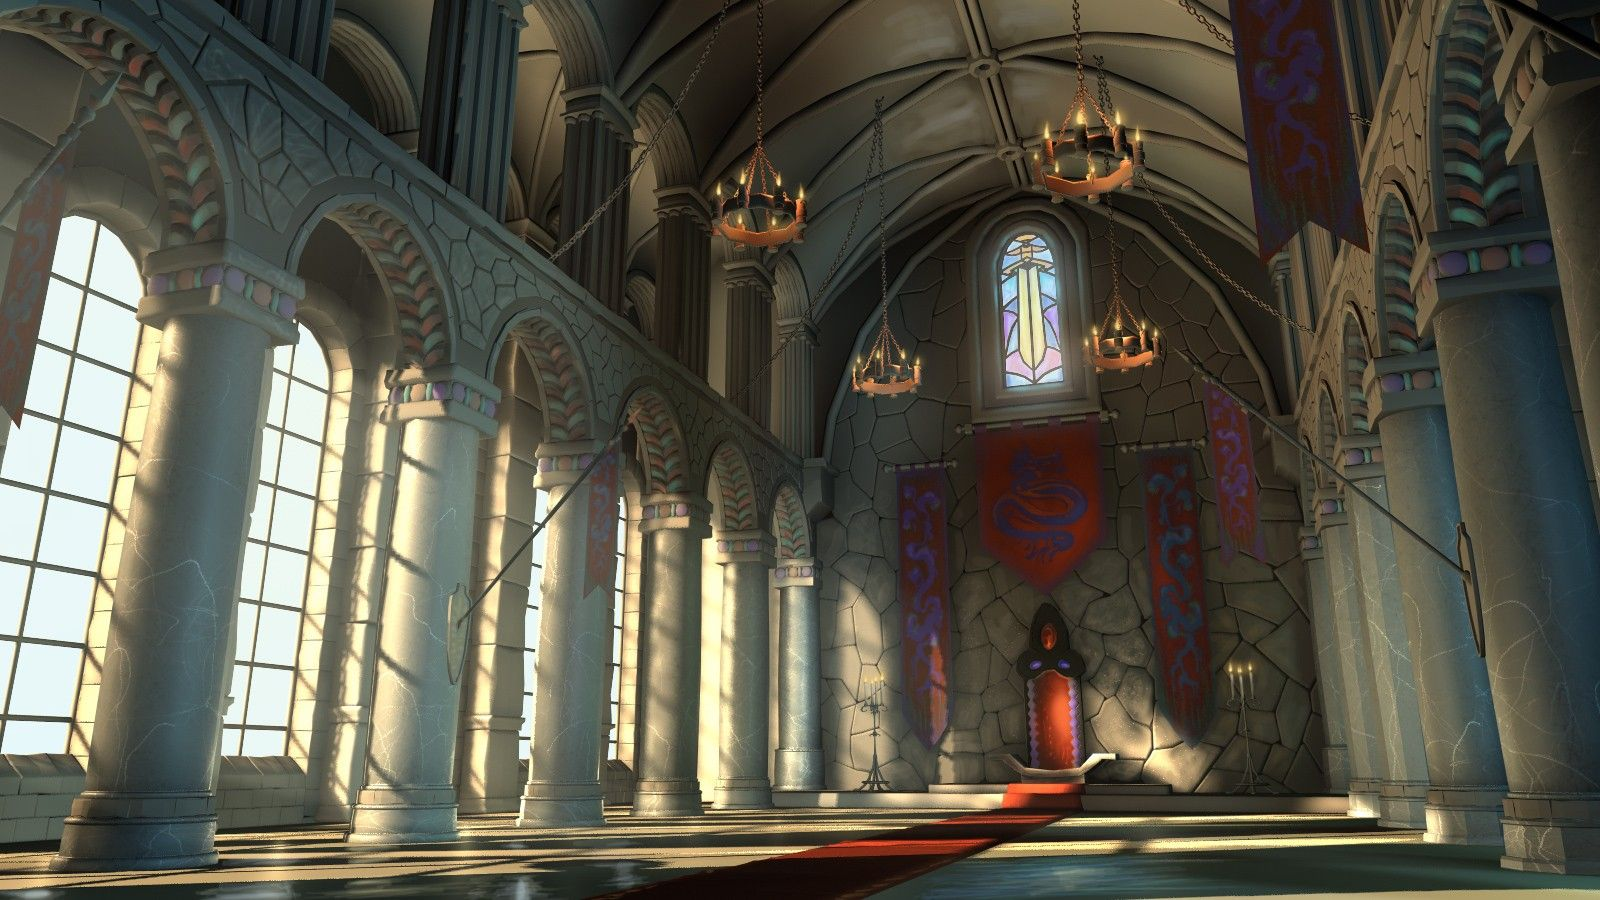 this is something like what i would picture the king u0026 39 s throne room looking like in the throne of